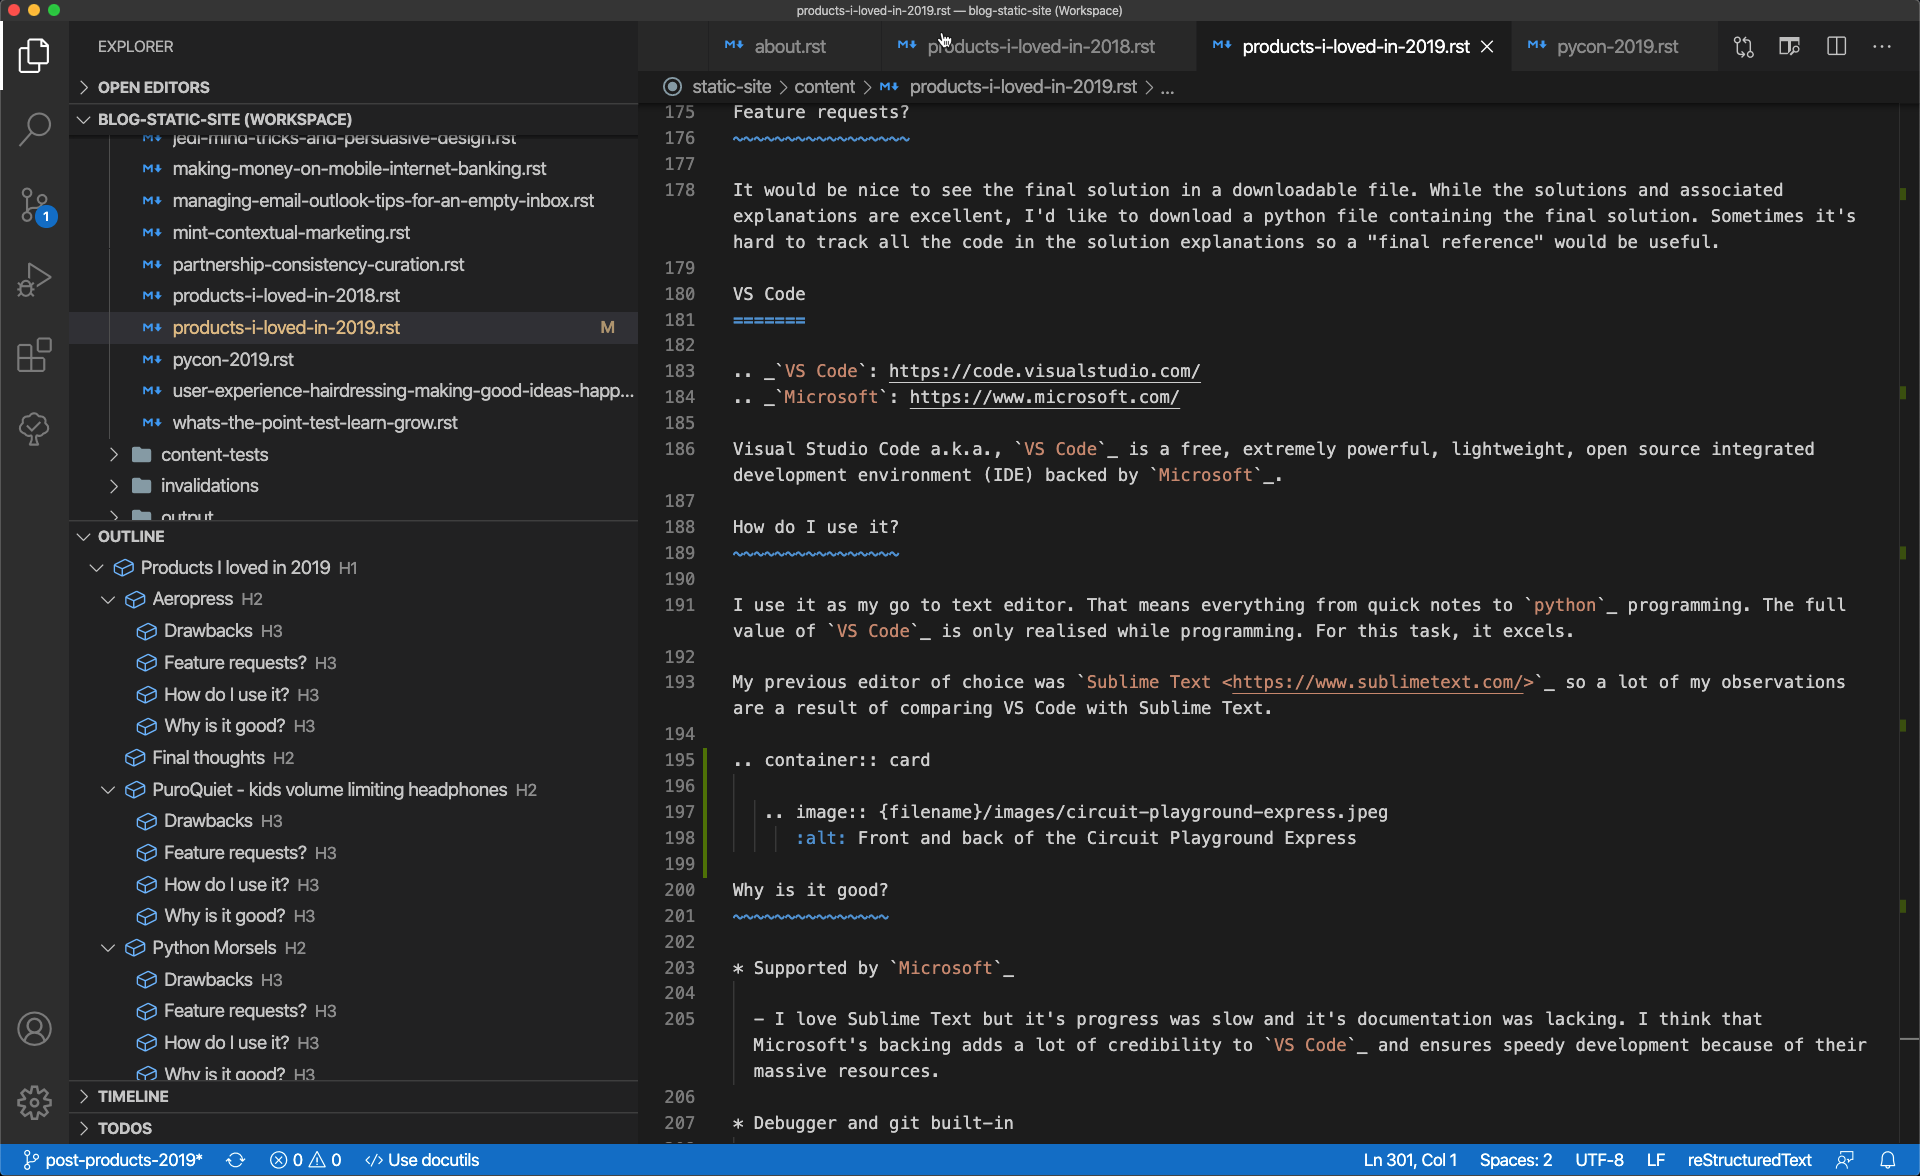 Screenshot of VS Code. The screen shows numerous panels used to create and edit this blog post.